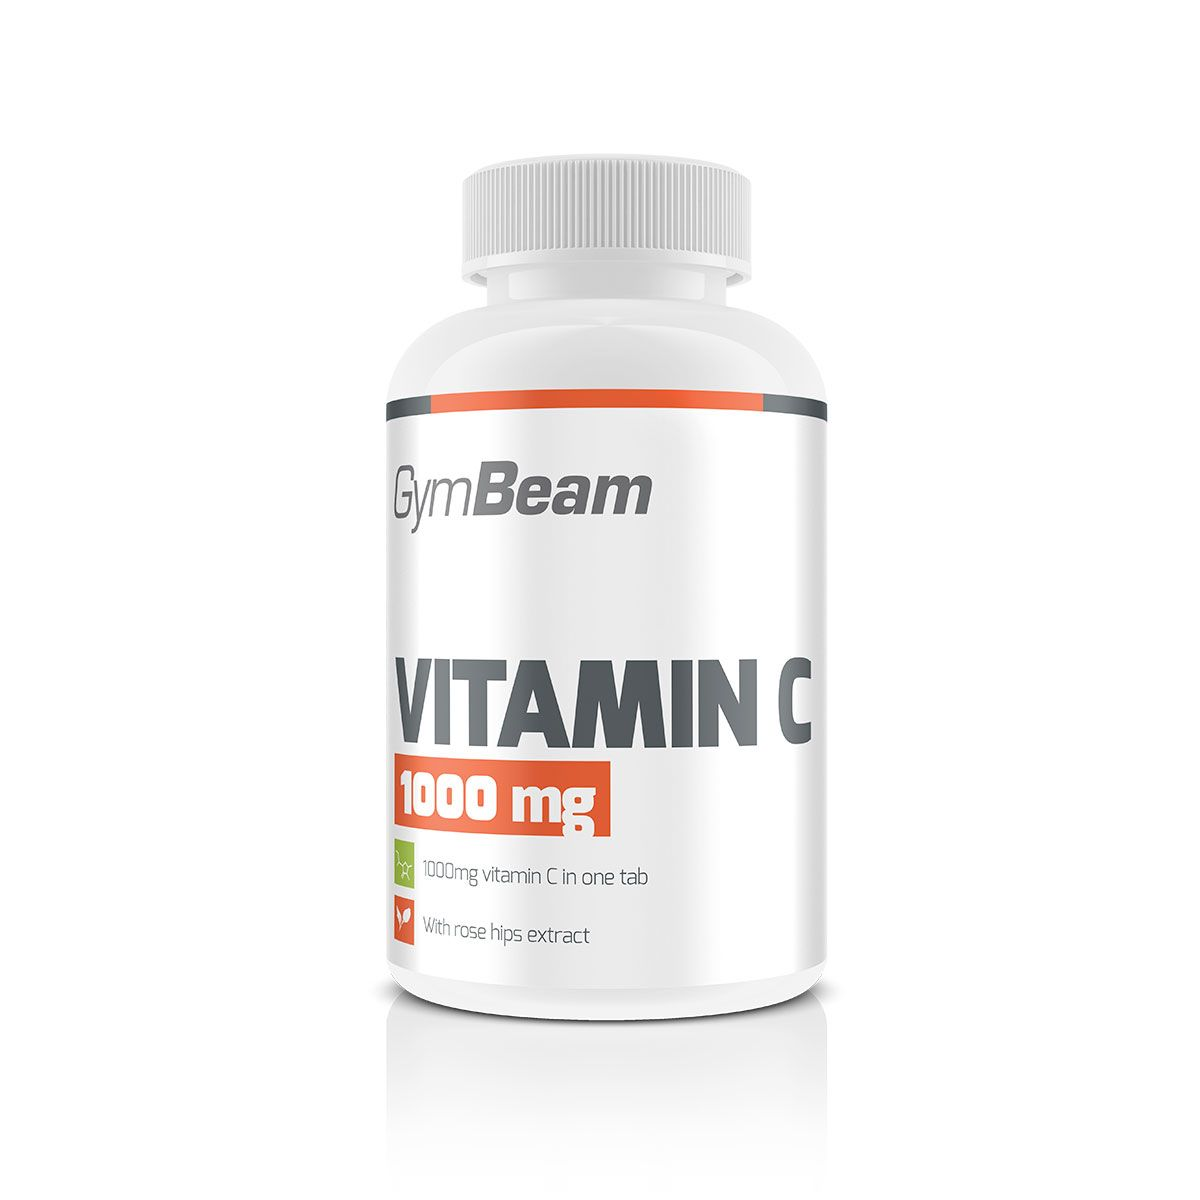 Vitamin C 1000 mg - Gym Beam - 30 tab.